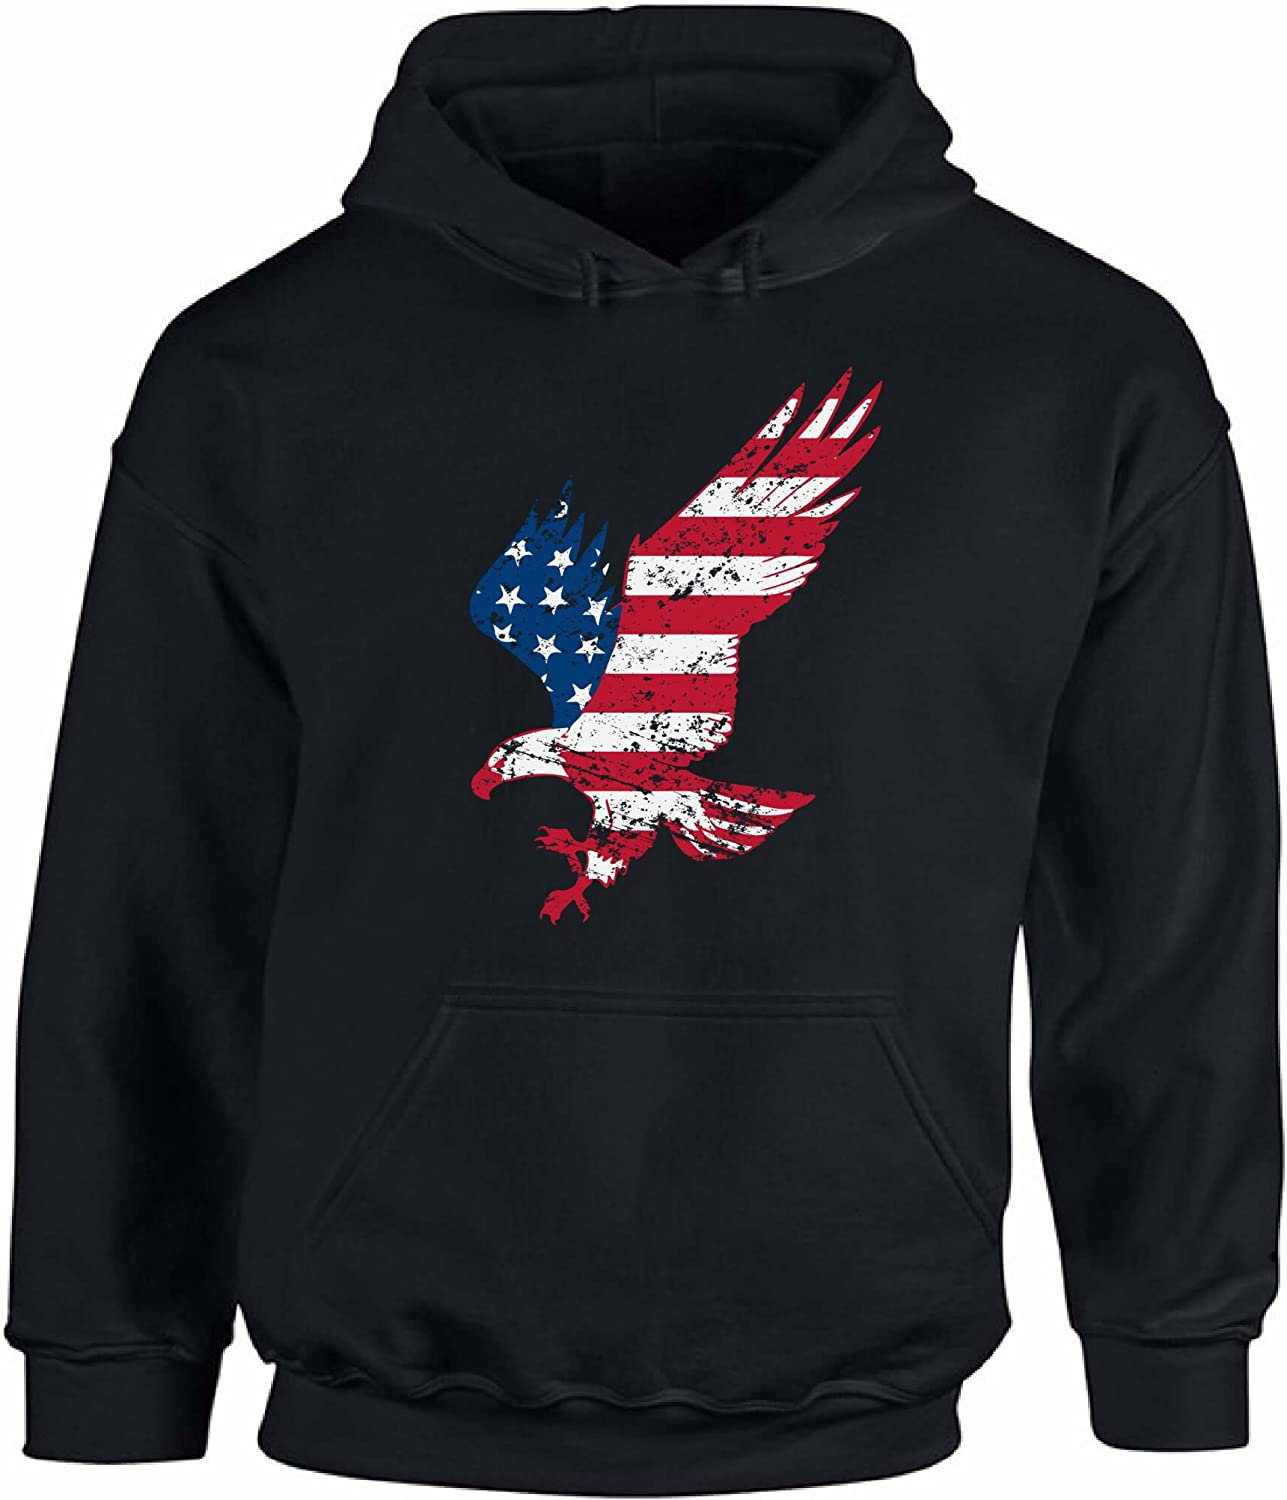 Awkward Styles Unisex USA Flag Eagle Patriotic Hoodie Hooded Sweatshirt Independence Day Gift 4th of July